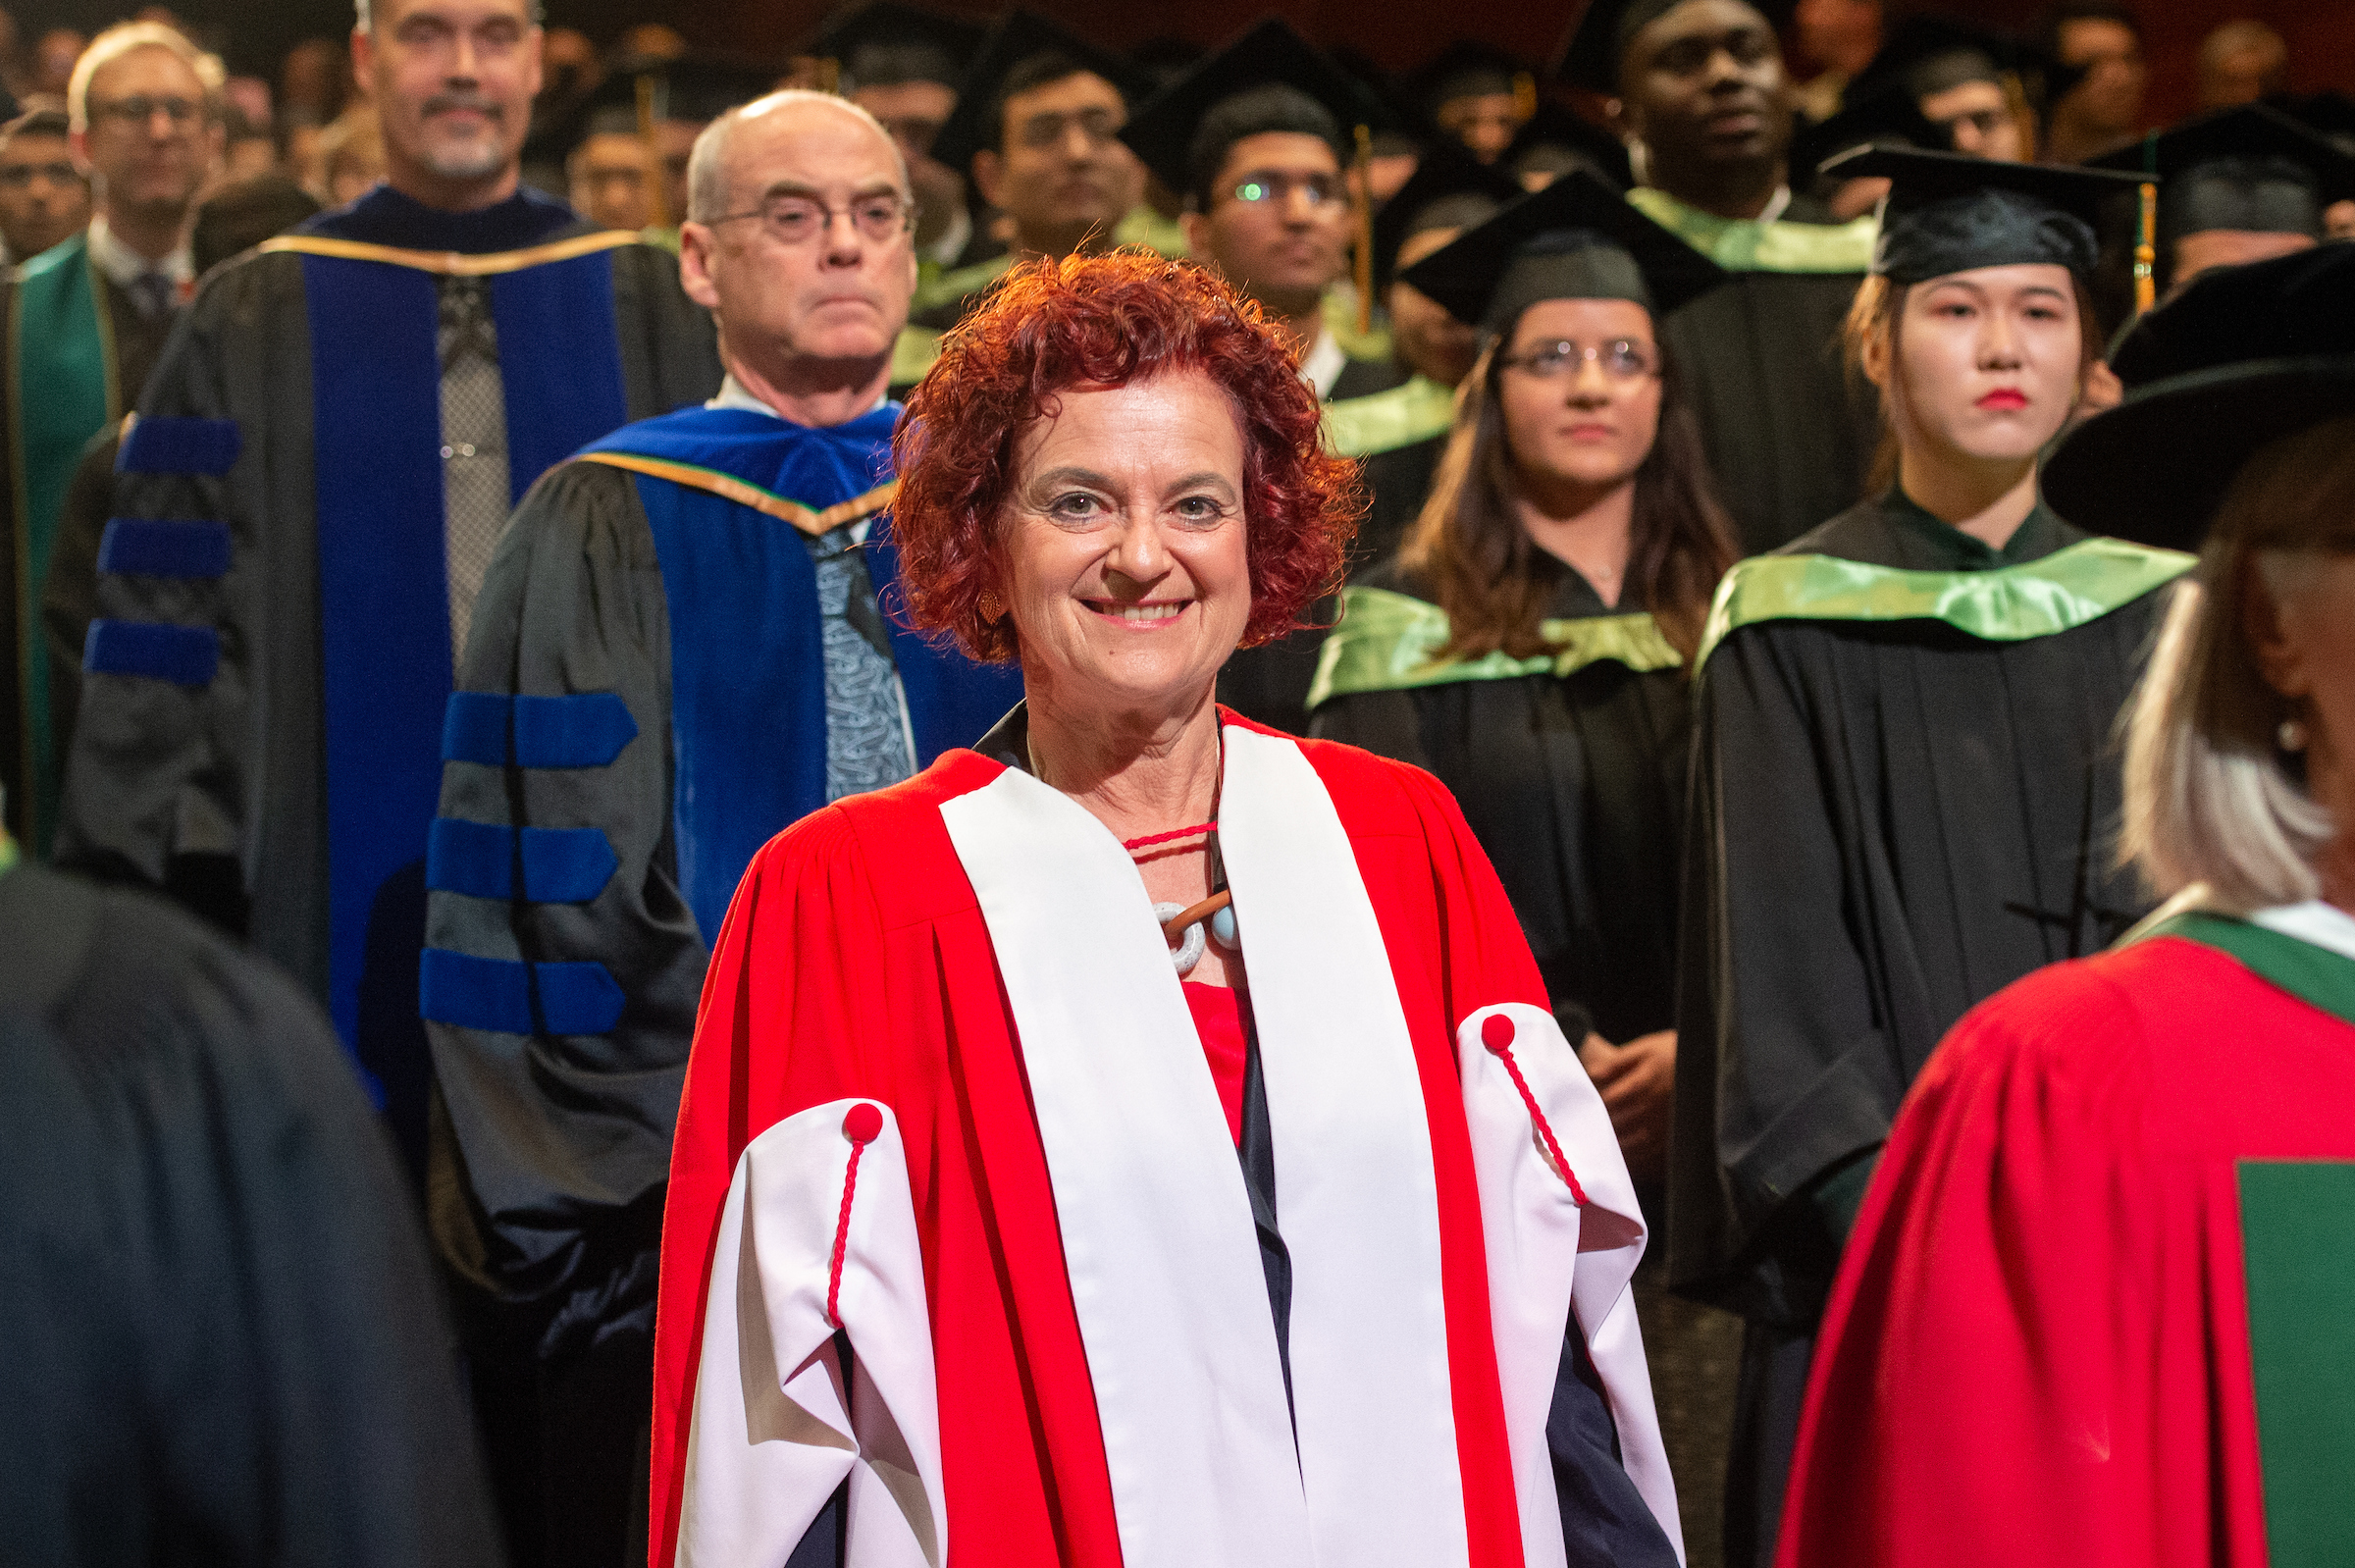 Vivian Manasc, honorary doctor of laws